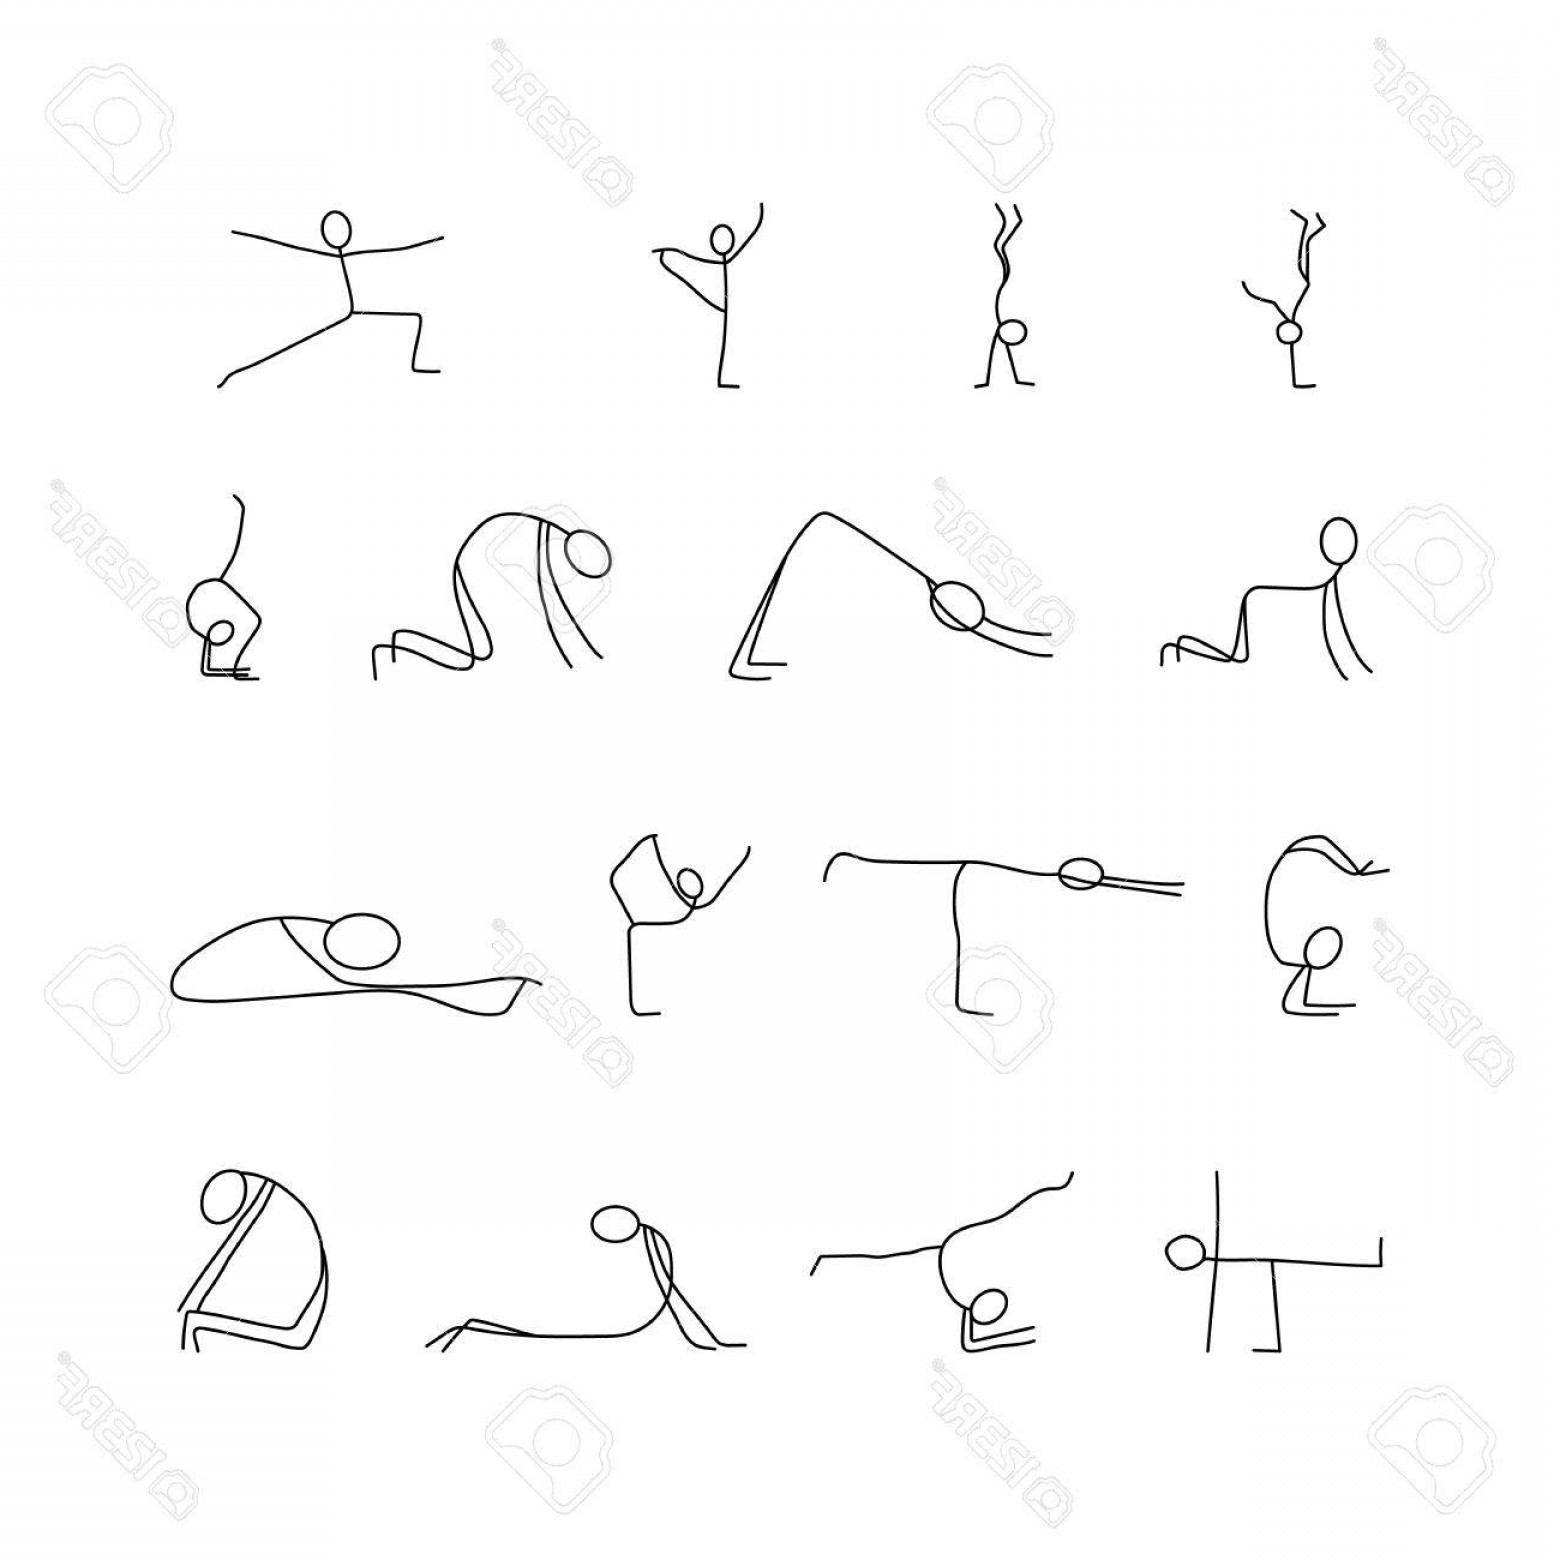 Yoga Stick Figure Vector: Photostock Vector Cartoon Icons Set Of Sketch Little People Stick Figures Doing Yoga